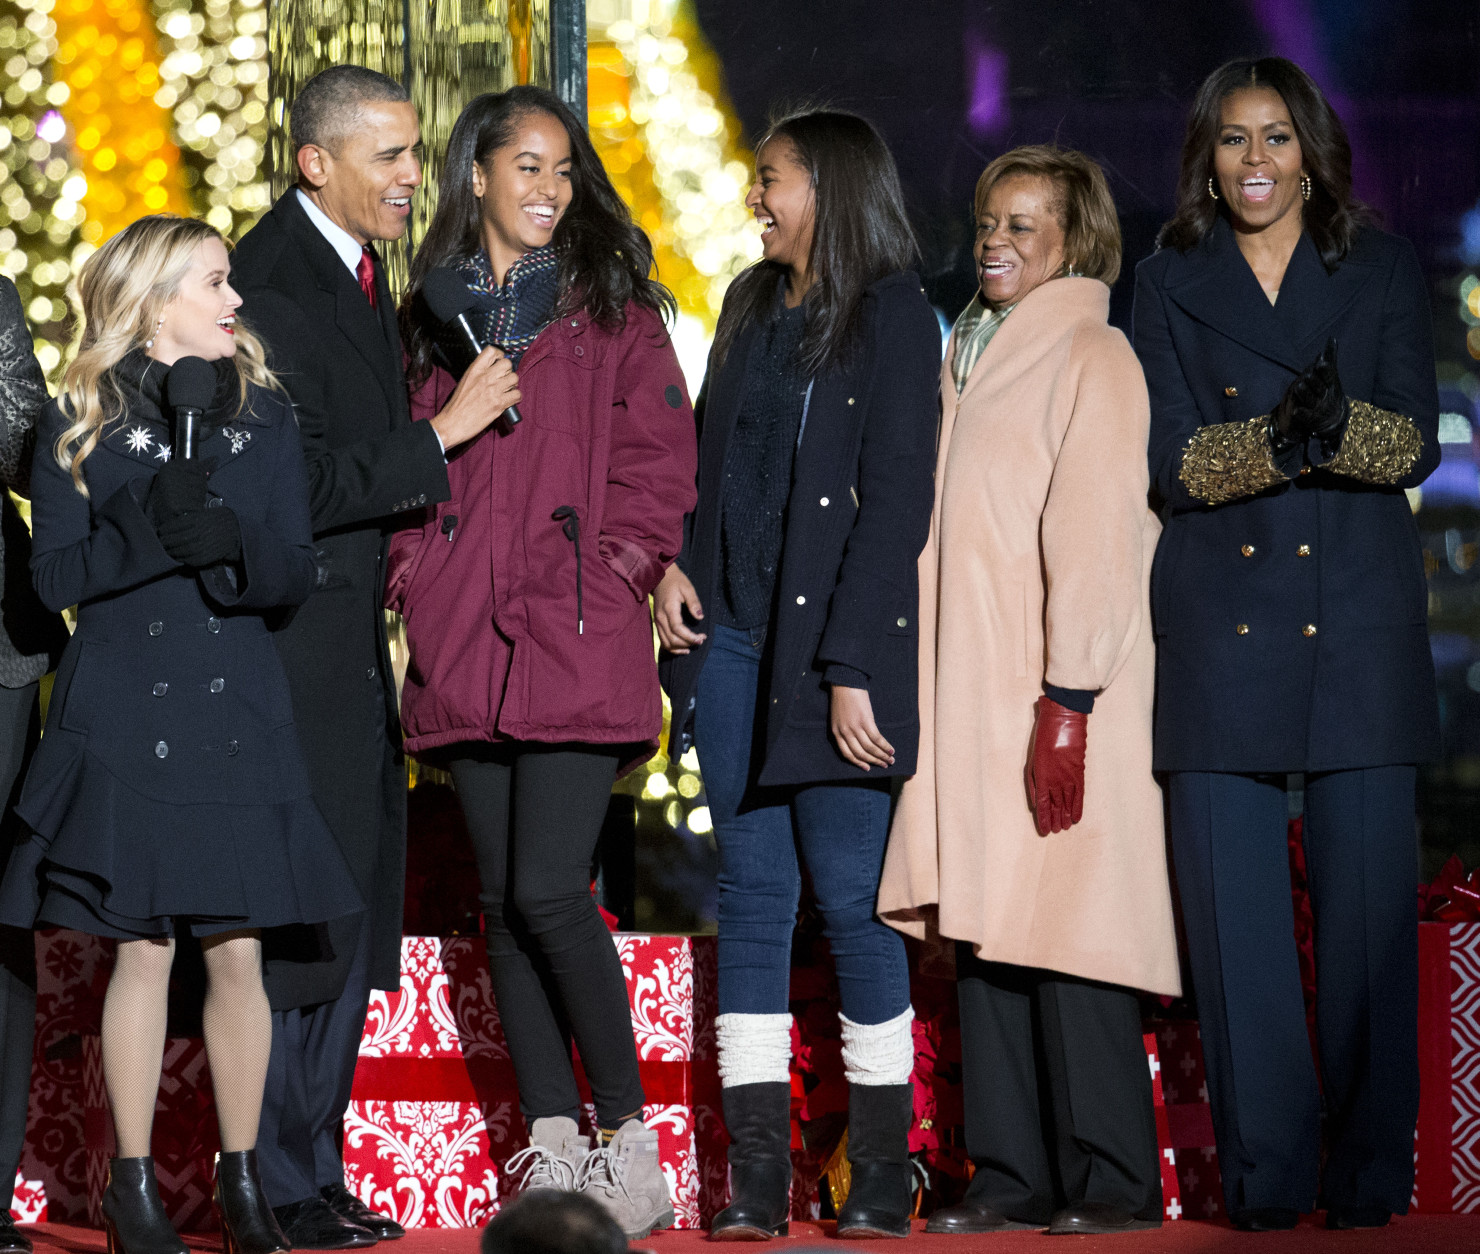 President Barack Obama, left, with daughters Malia and Sasha, mother-in-law Marian Robinson and first lady Michelle Obama sing onstage during the National Christmas Tree Lighting ceremony at the Ellipse in Washington, Thursday, Dec. 3, 2015. Also on stage is actress Reese Witherspoon at left. (AP Photo/Pablo Martinez Monsivais)